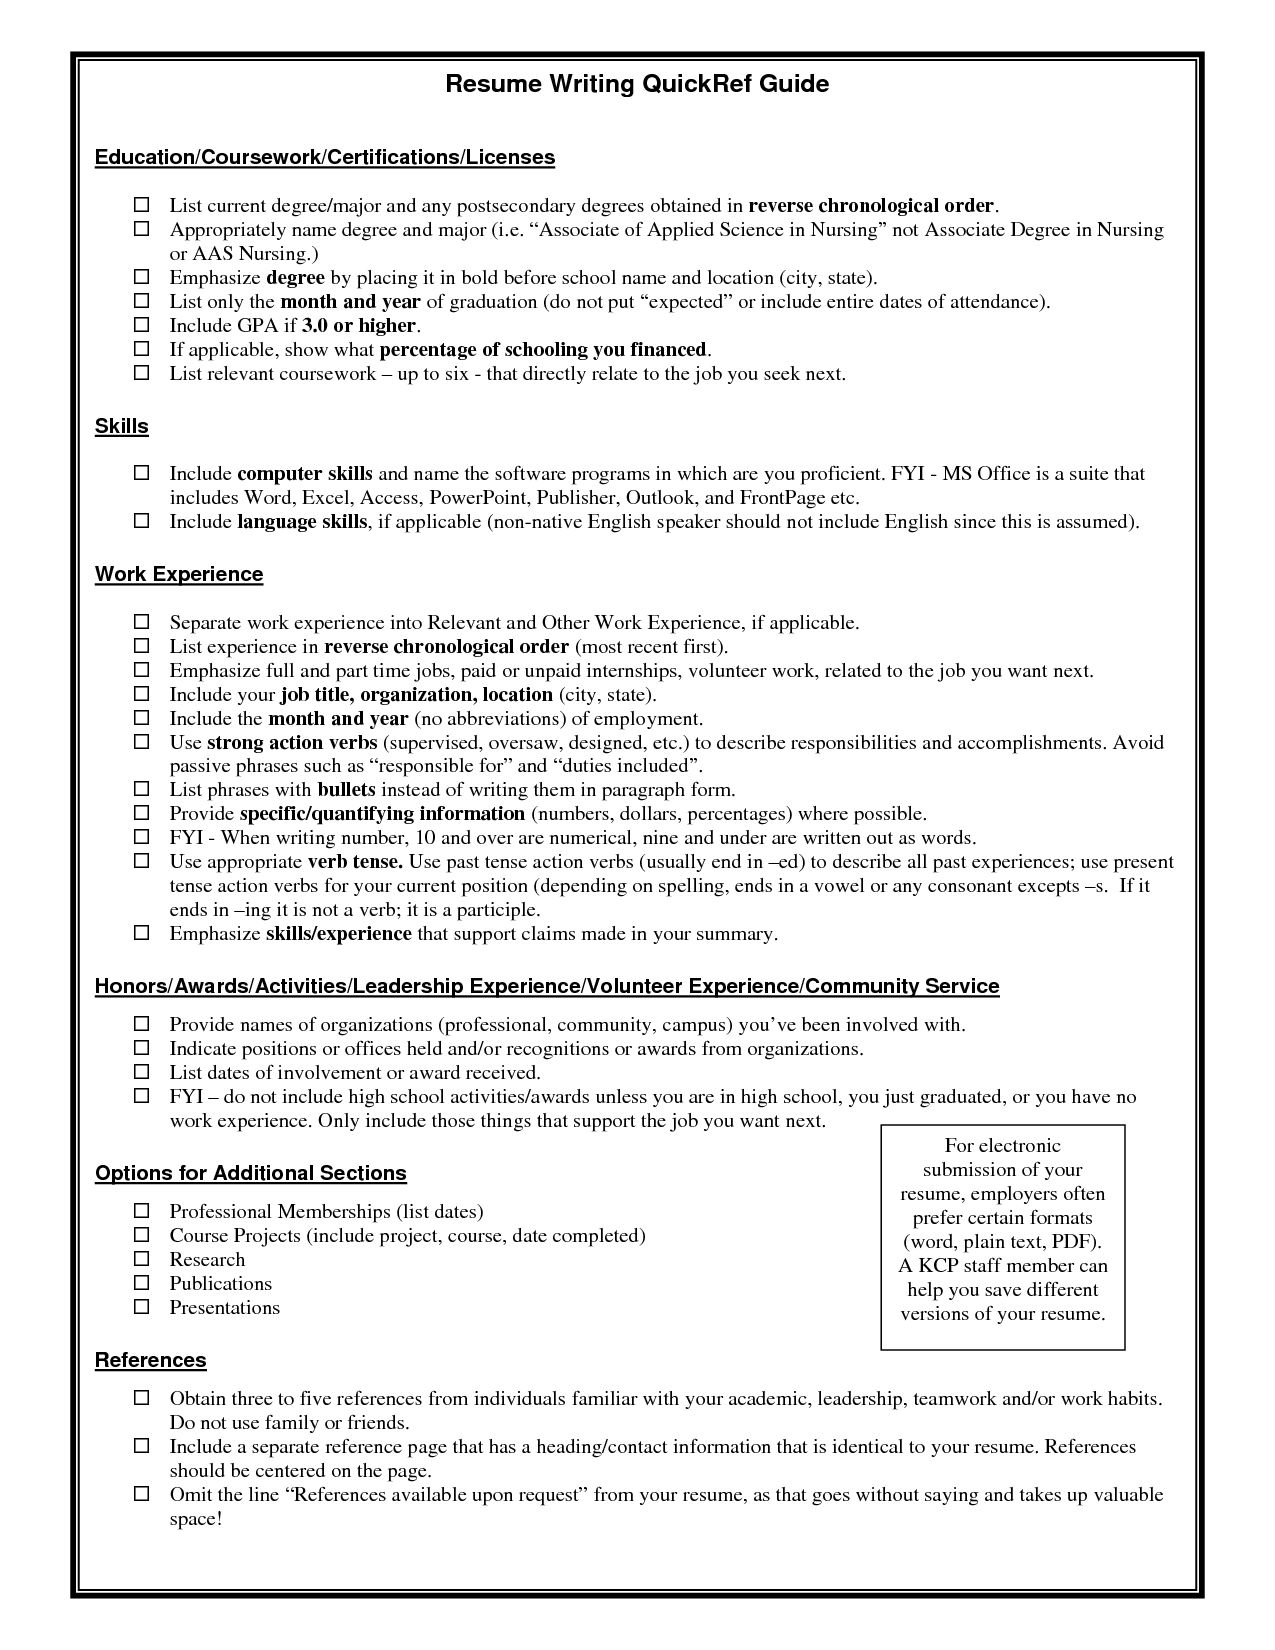 Resume references format upon request